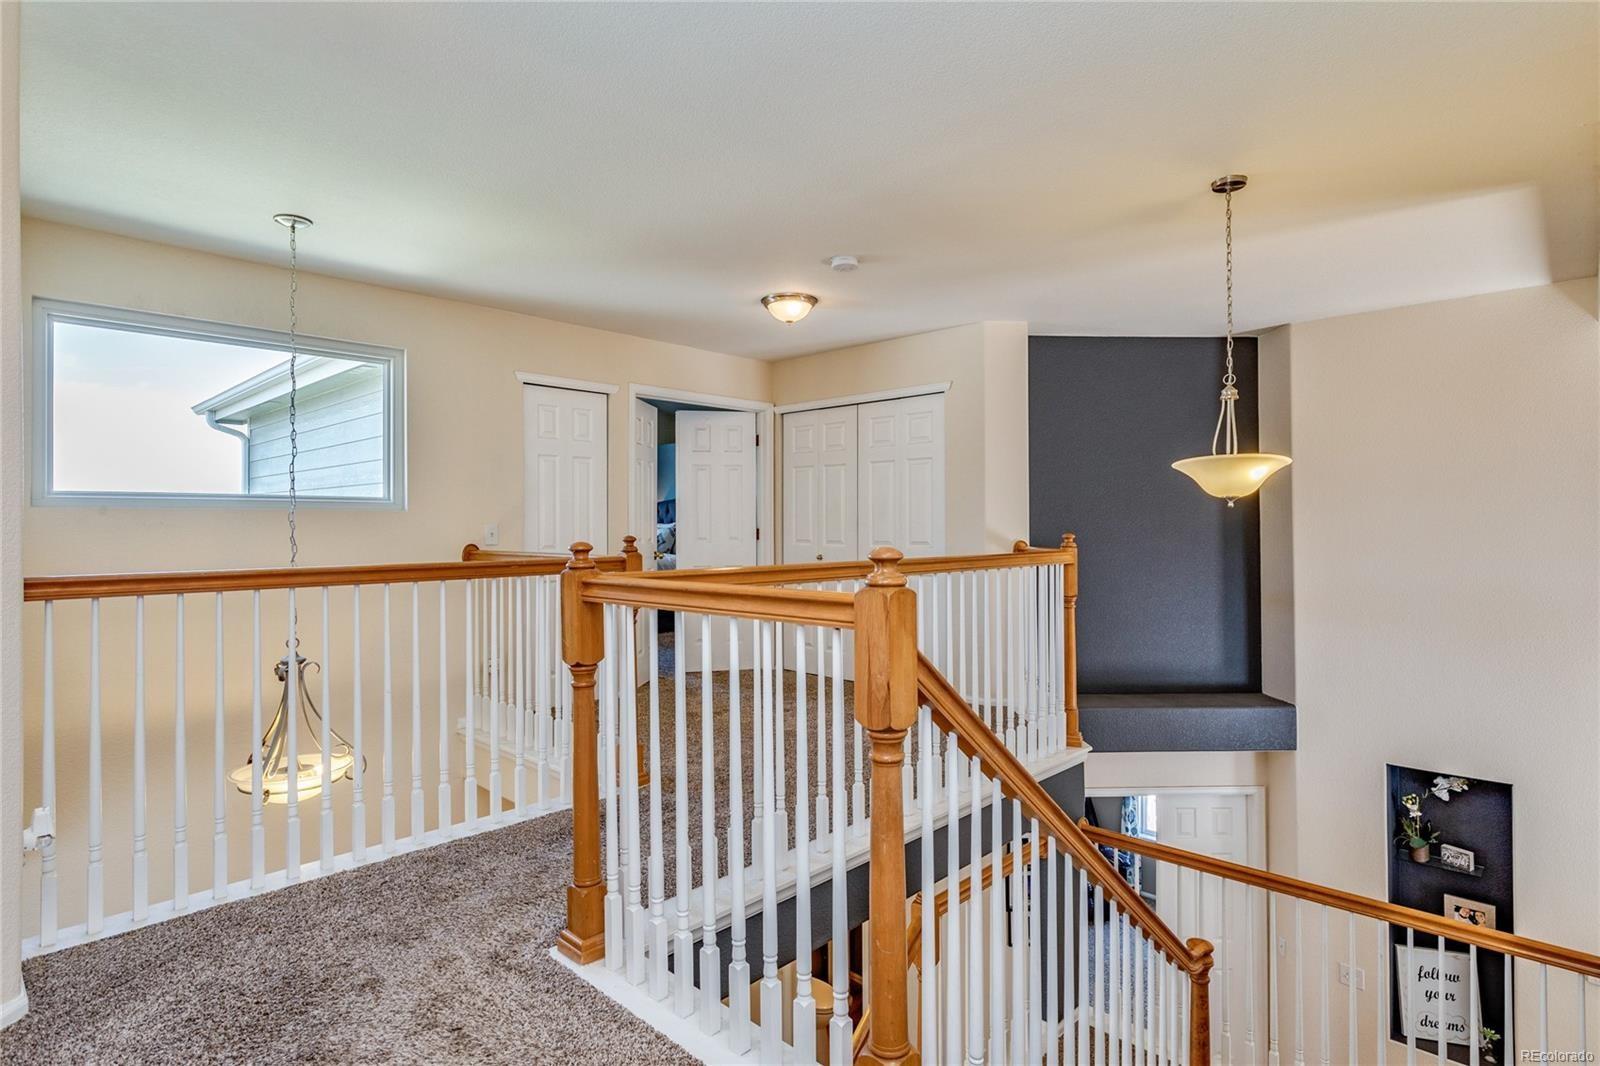 MLS# 3396693 - 15 - 6084 S Zante Way, Aurora, CO 80015